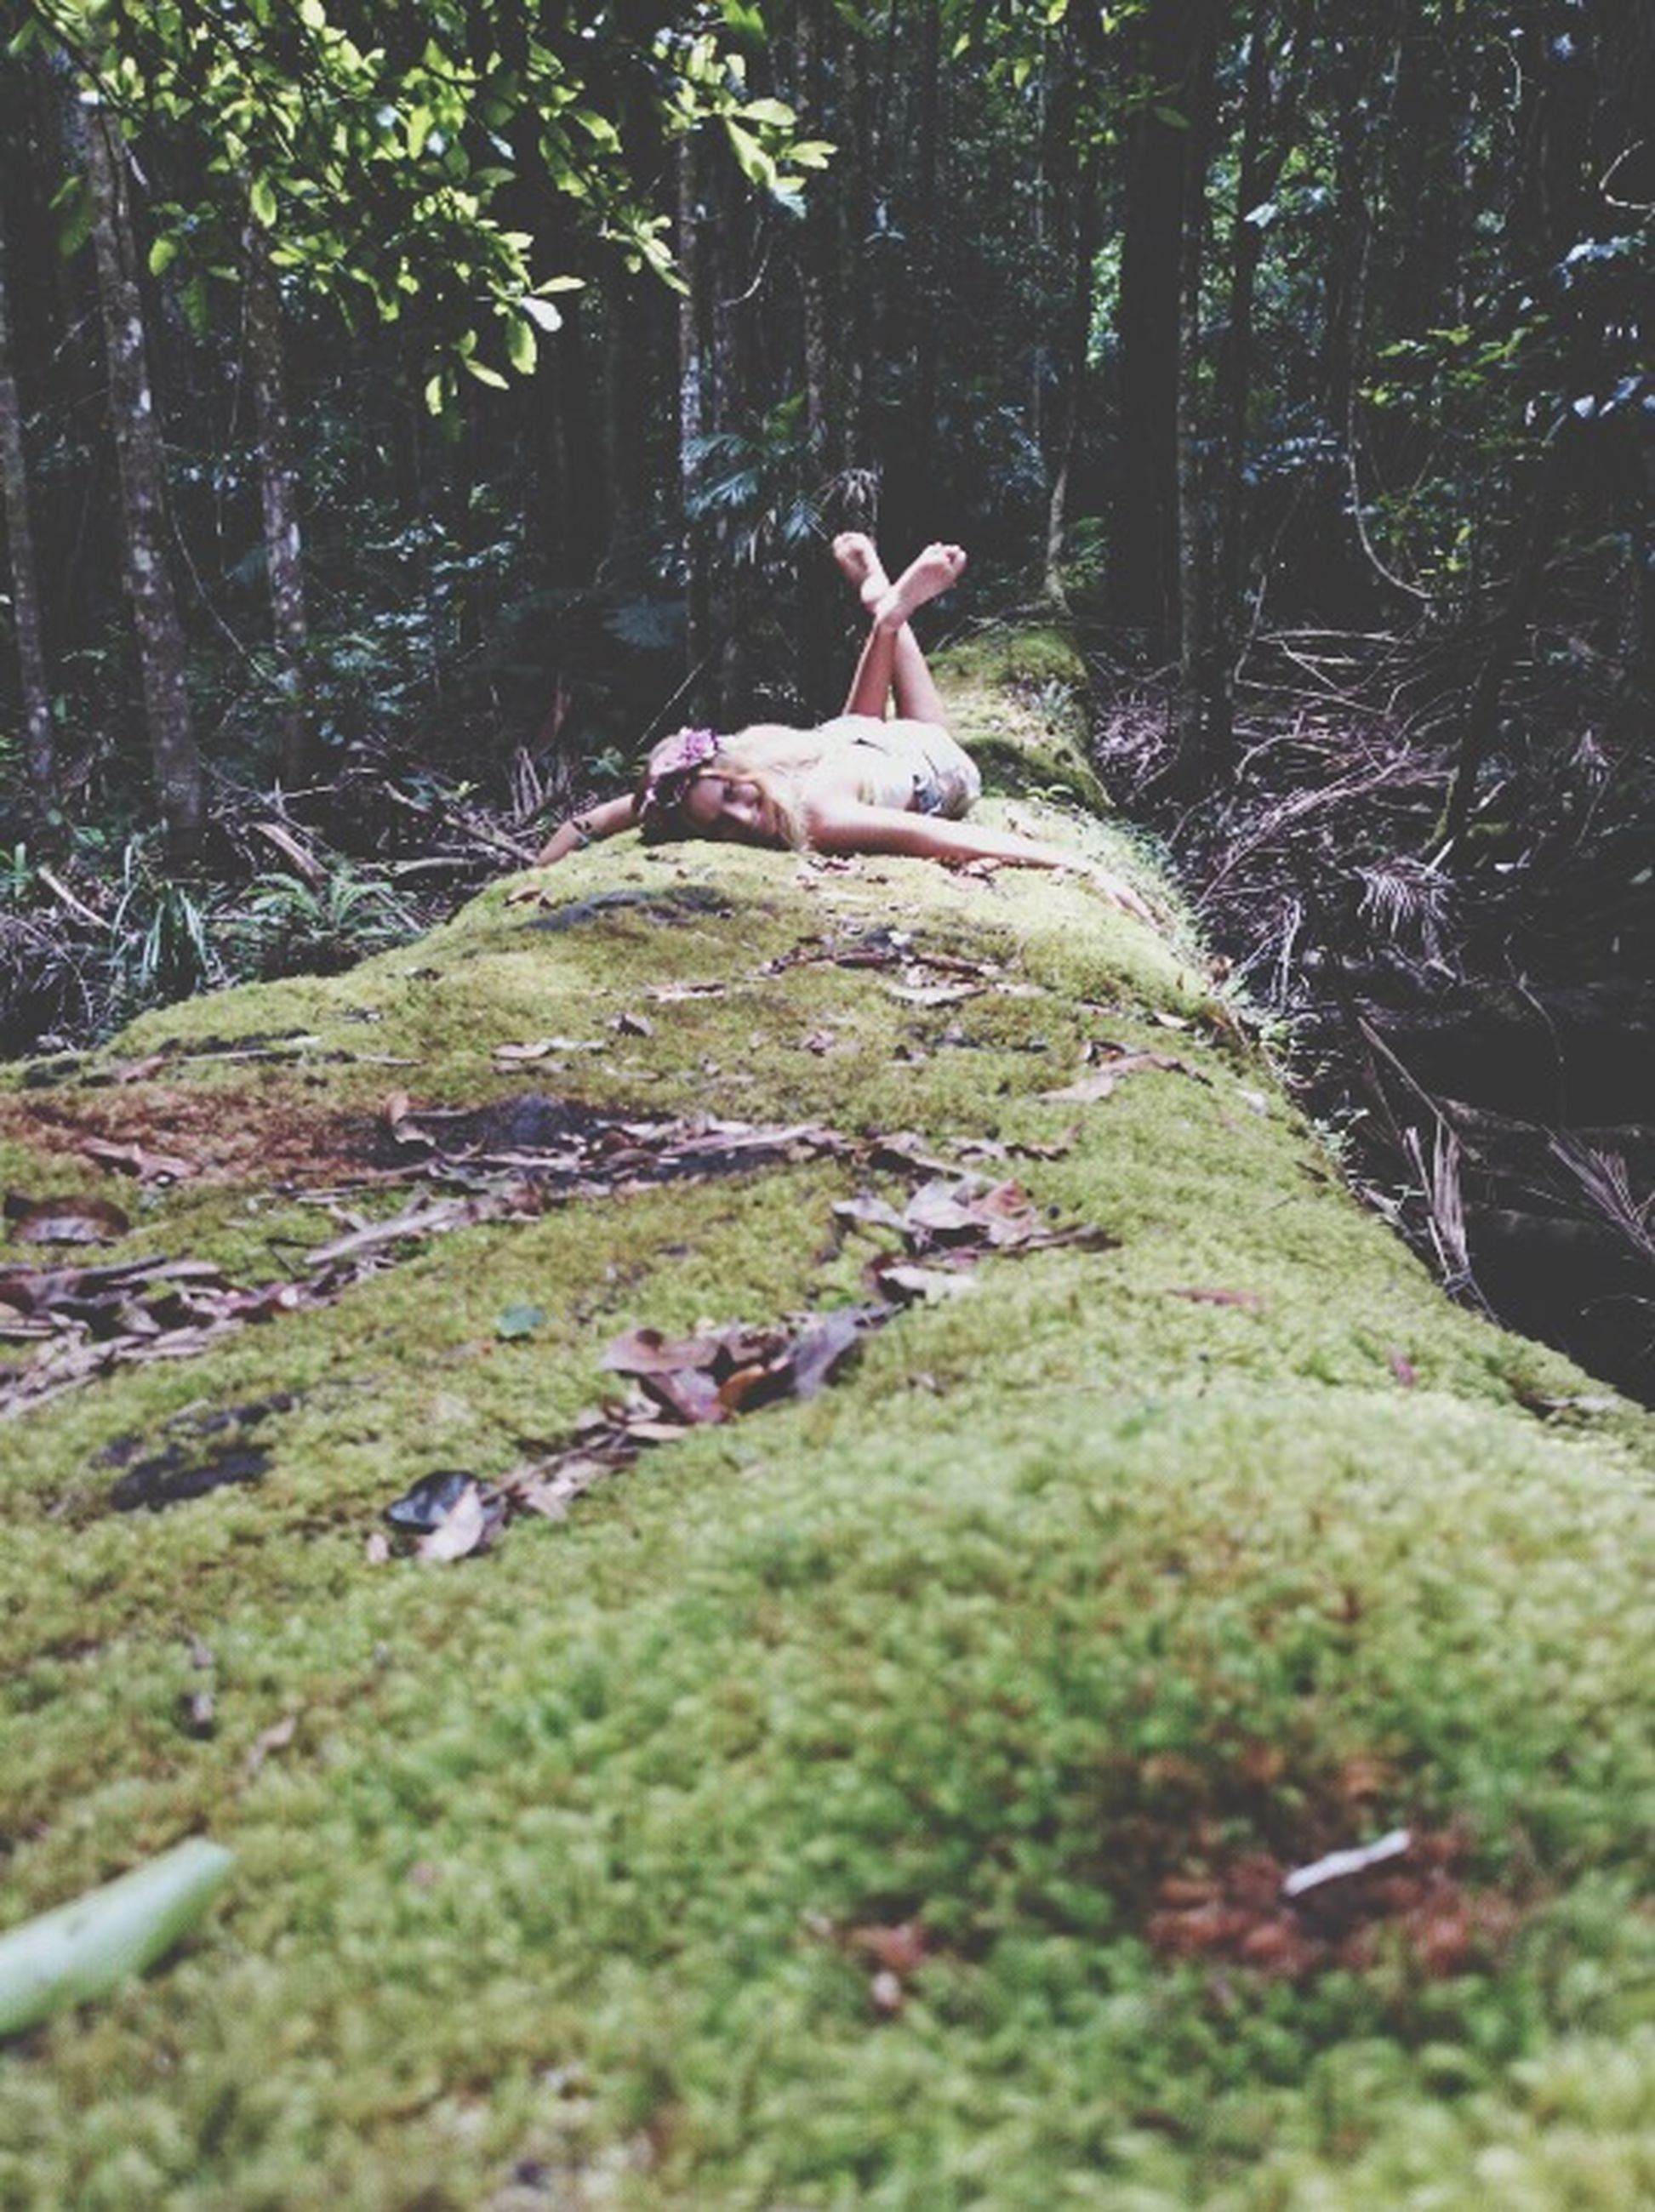 tree, forest, animal themes, bird, animals in the wild, wildlife, nature, tranquility, tree trunk, green color, beauty in nature, growth, tranquil scene, day, grass, one animal, outdoors, water, full length, no people